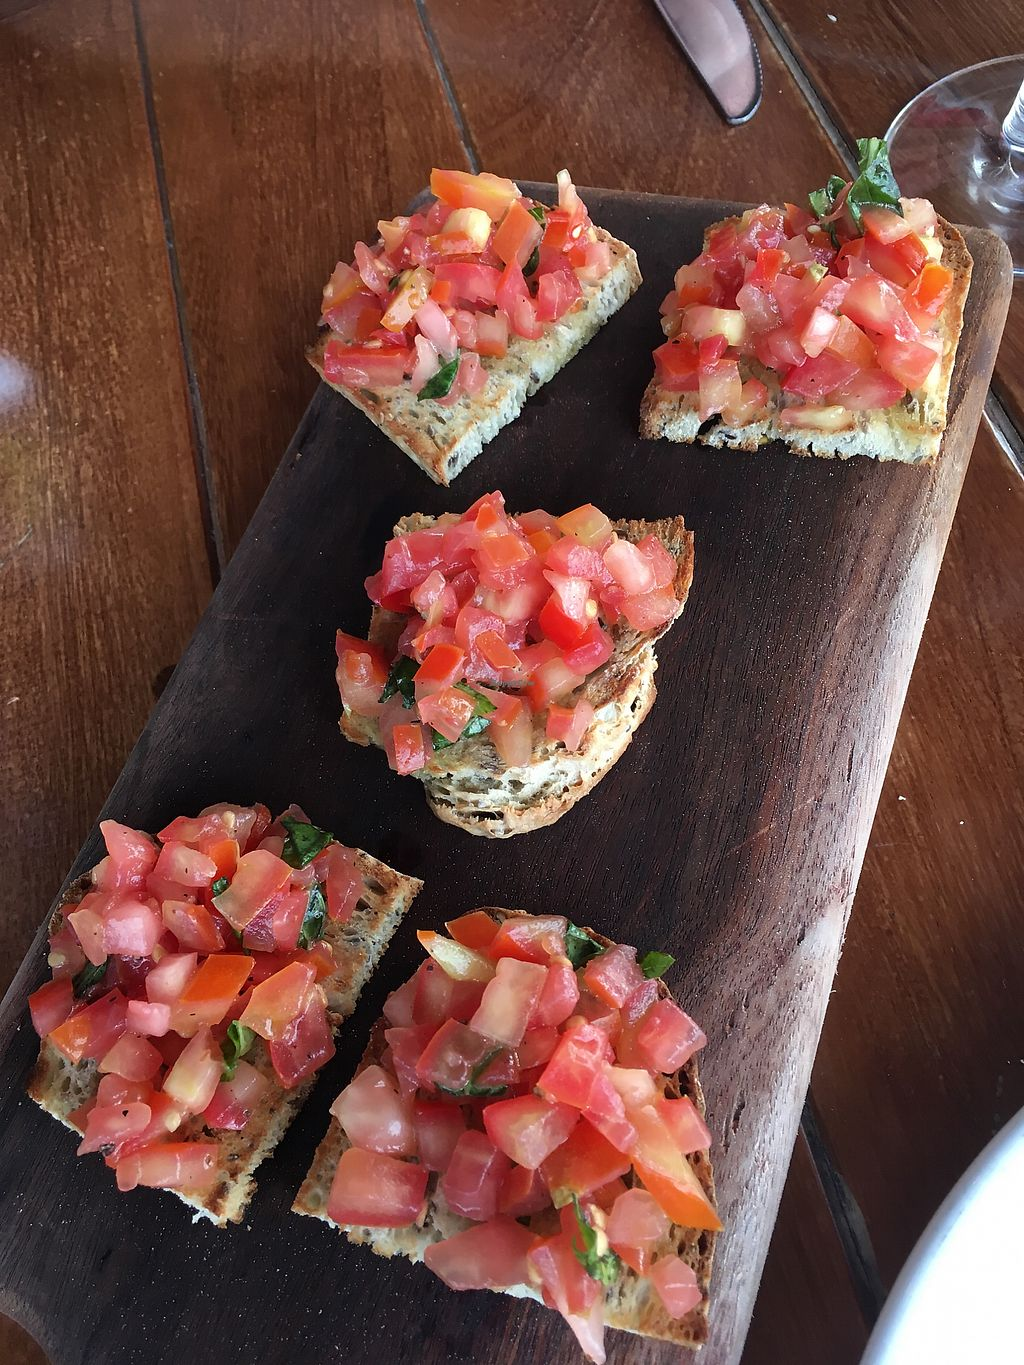 """Photo of La Traviata  by <a href=""""/members/profile/JessicaAllens"""">JessicaAllens</a> <br/>Bruschetta without cheese <br/> March 10, 2018  - <a href='/contact/abuse/image/55748/368990'>Report</a>"""